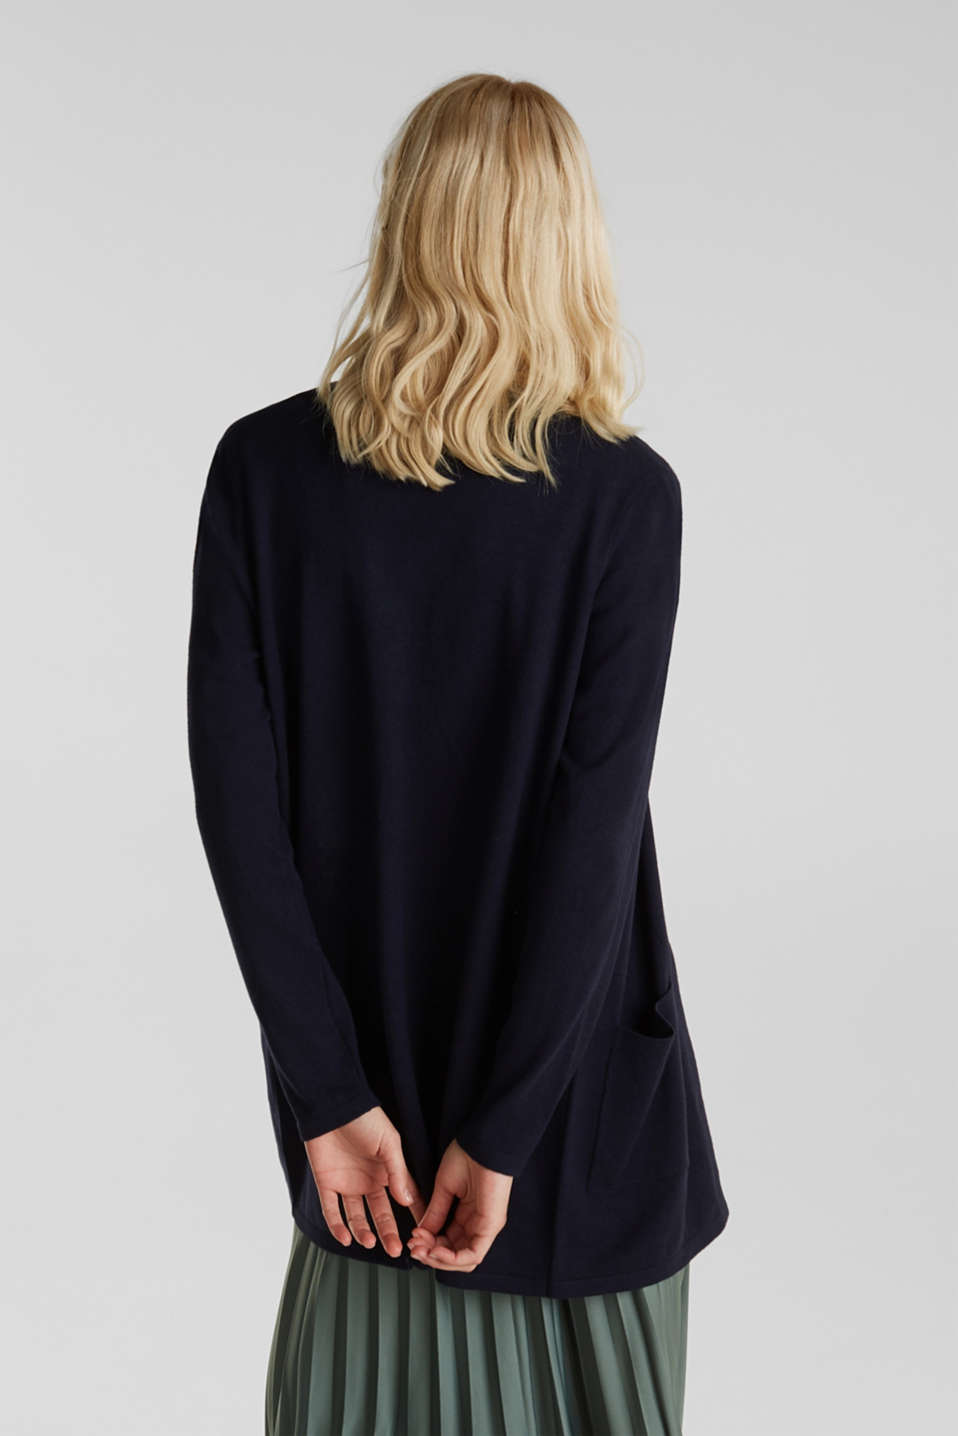 With linen: open cardigan with open-work pattern details, NAVY, detail image number 2